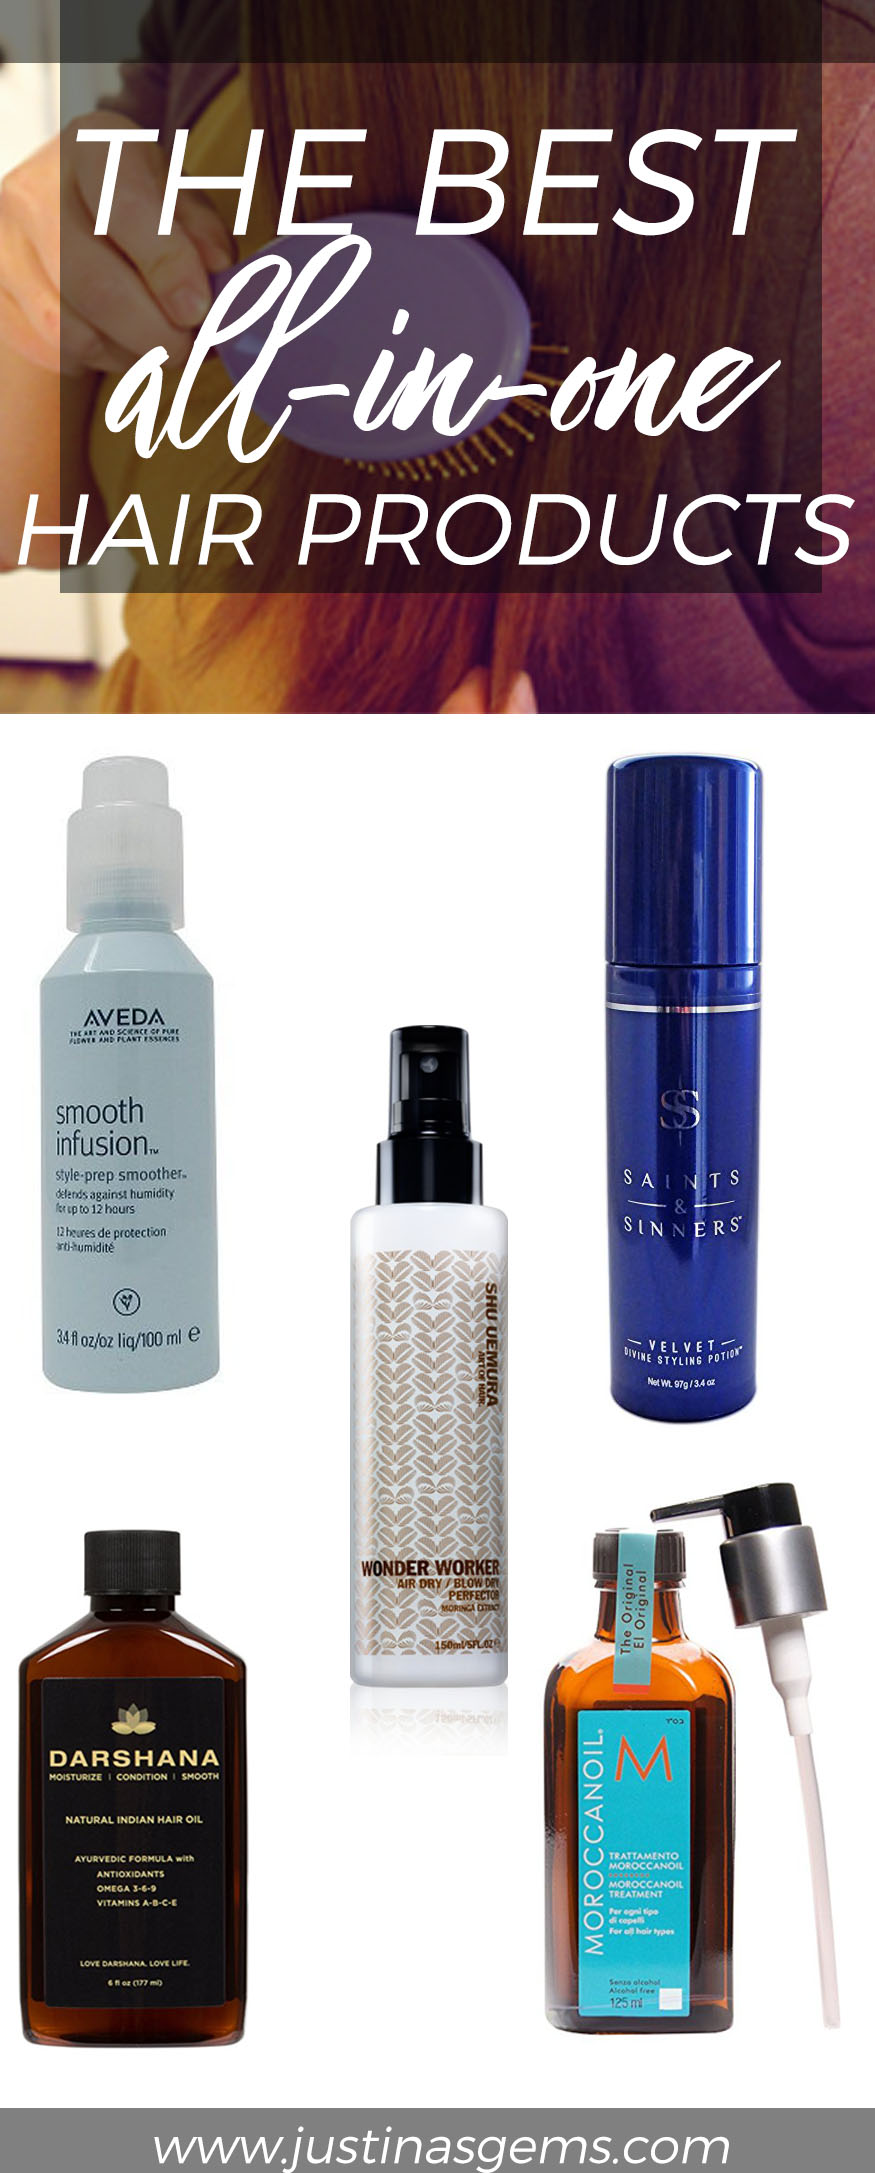 The Best All in One Hair Products- Great products for frizzy, thick, coarse, long hair that you can use to wash and go!